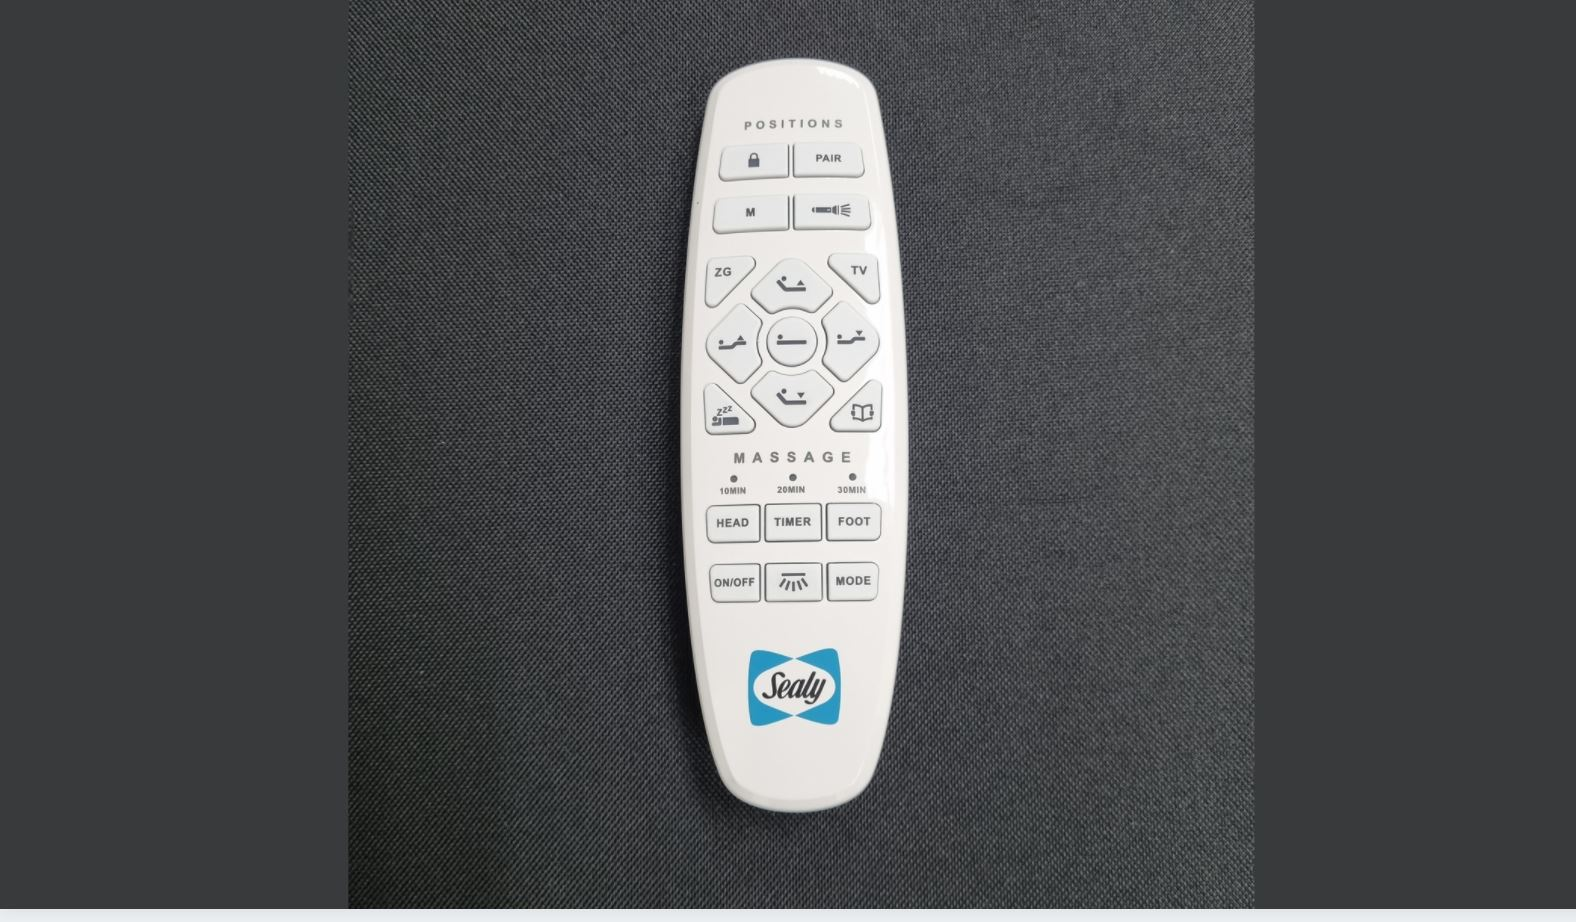 Sealy Energise Base Remote Control